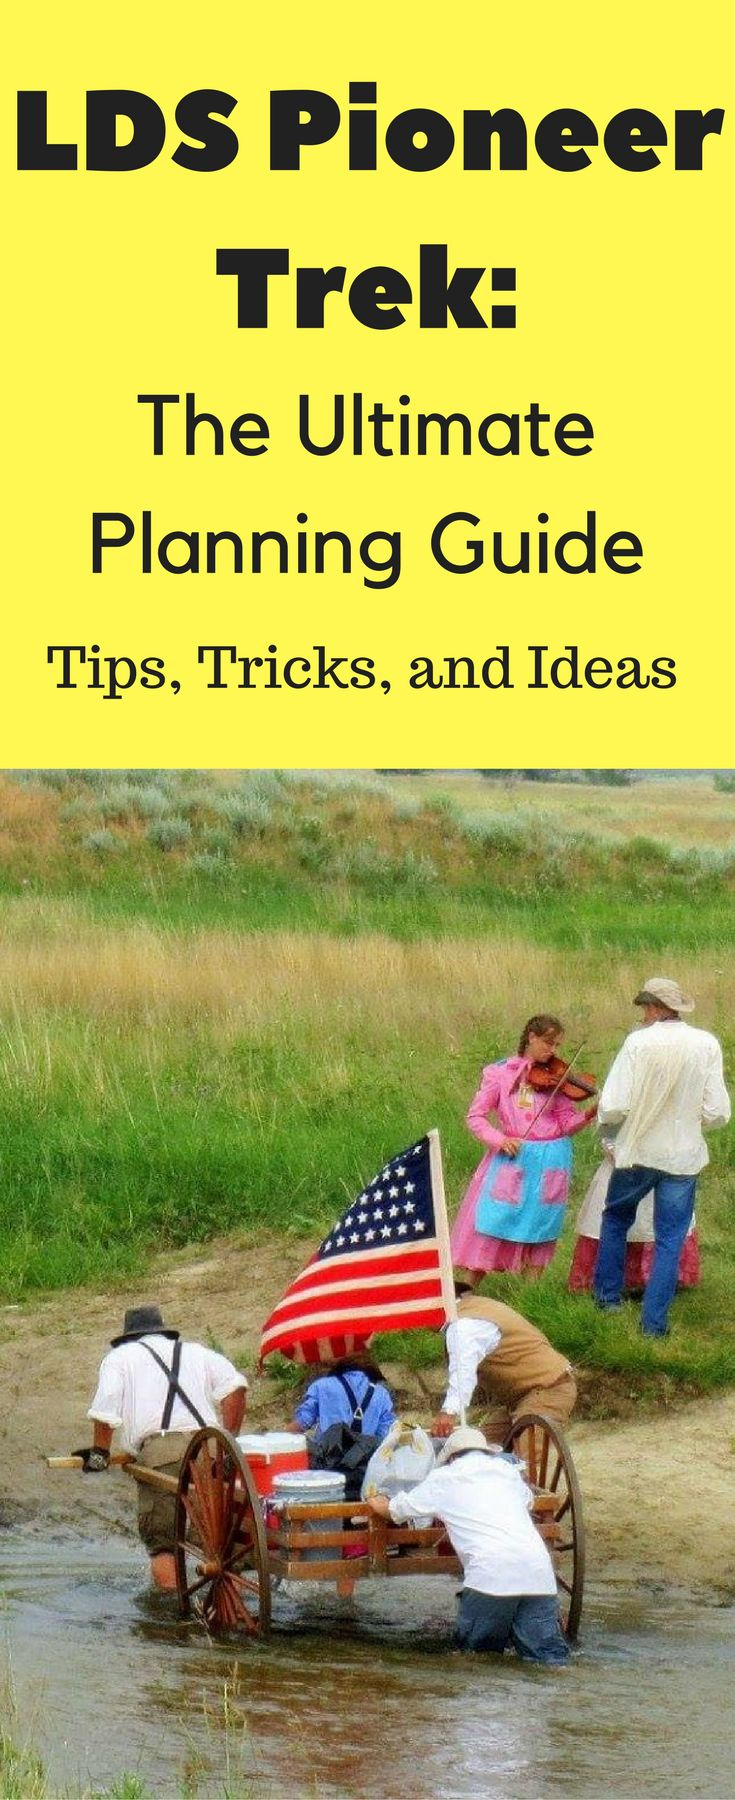 Mormon Pioneer Trek Ideas: The Ultimate Planning Guide Are you or your kids going on a Mormon Pioneer Trek? This post will help you find the best places fo